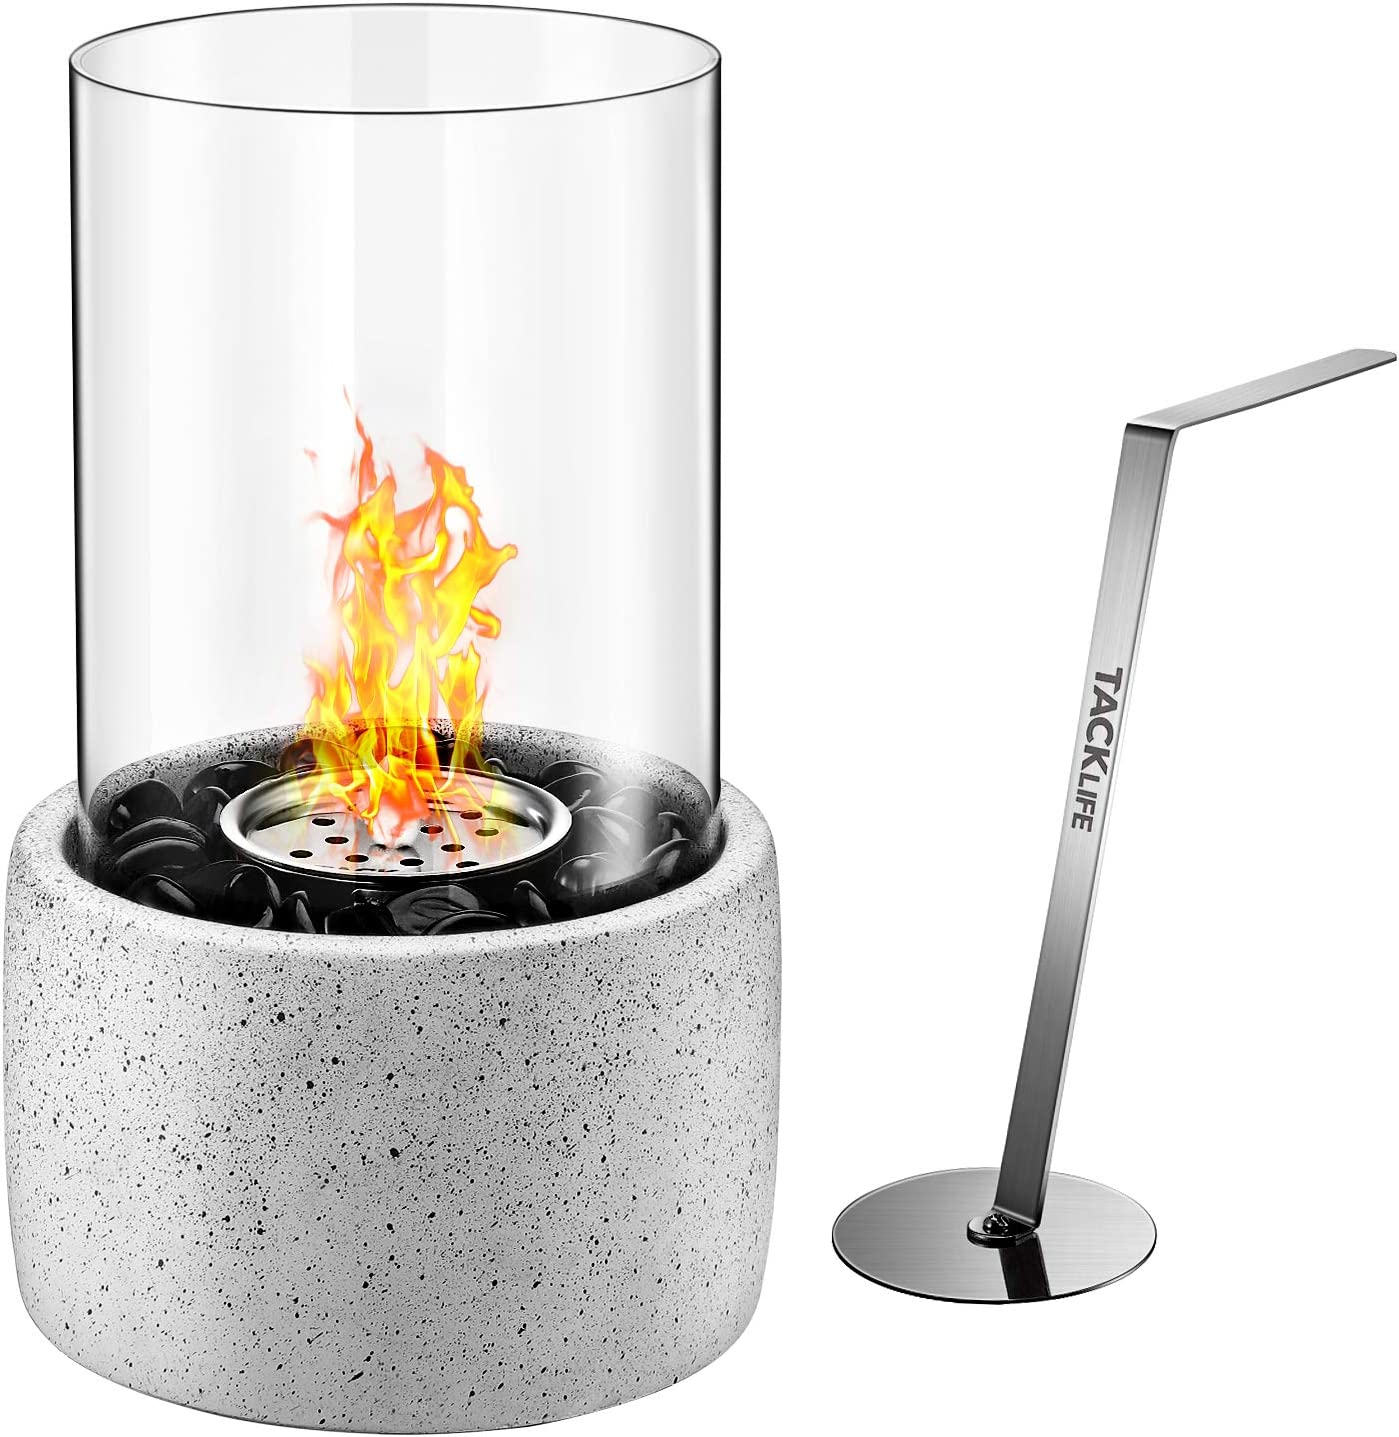 TACKLIFE Tabletop Portable Fireplace